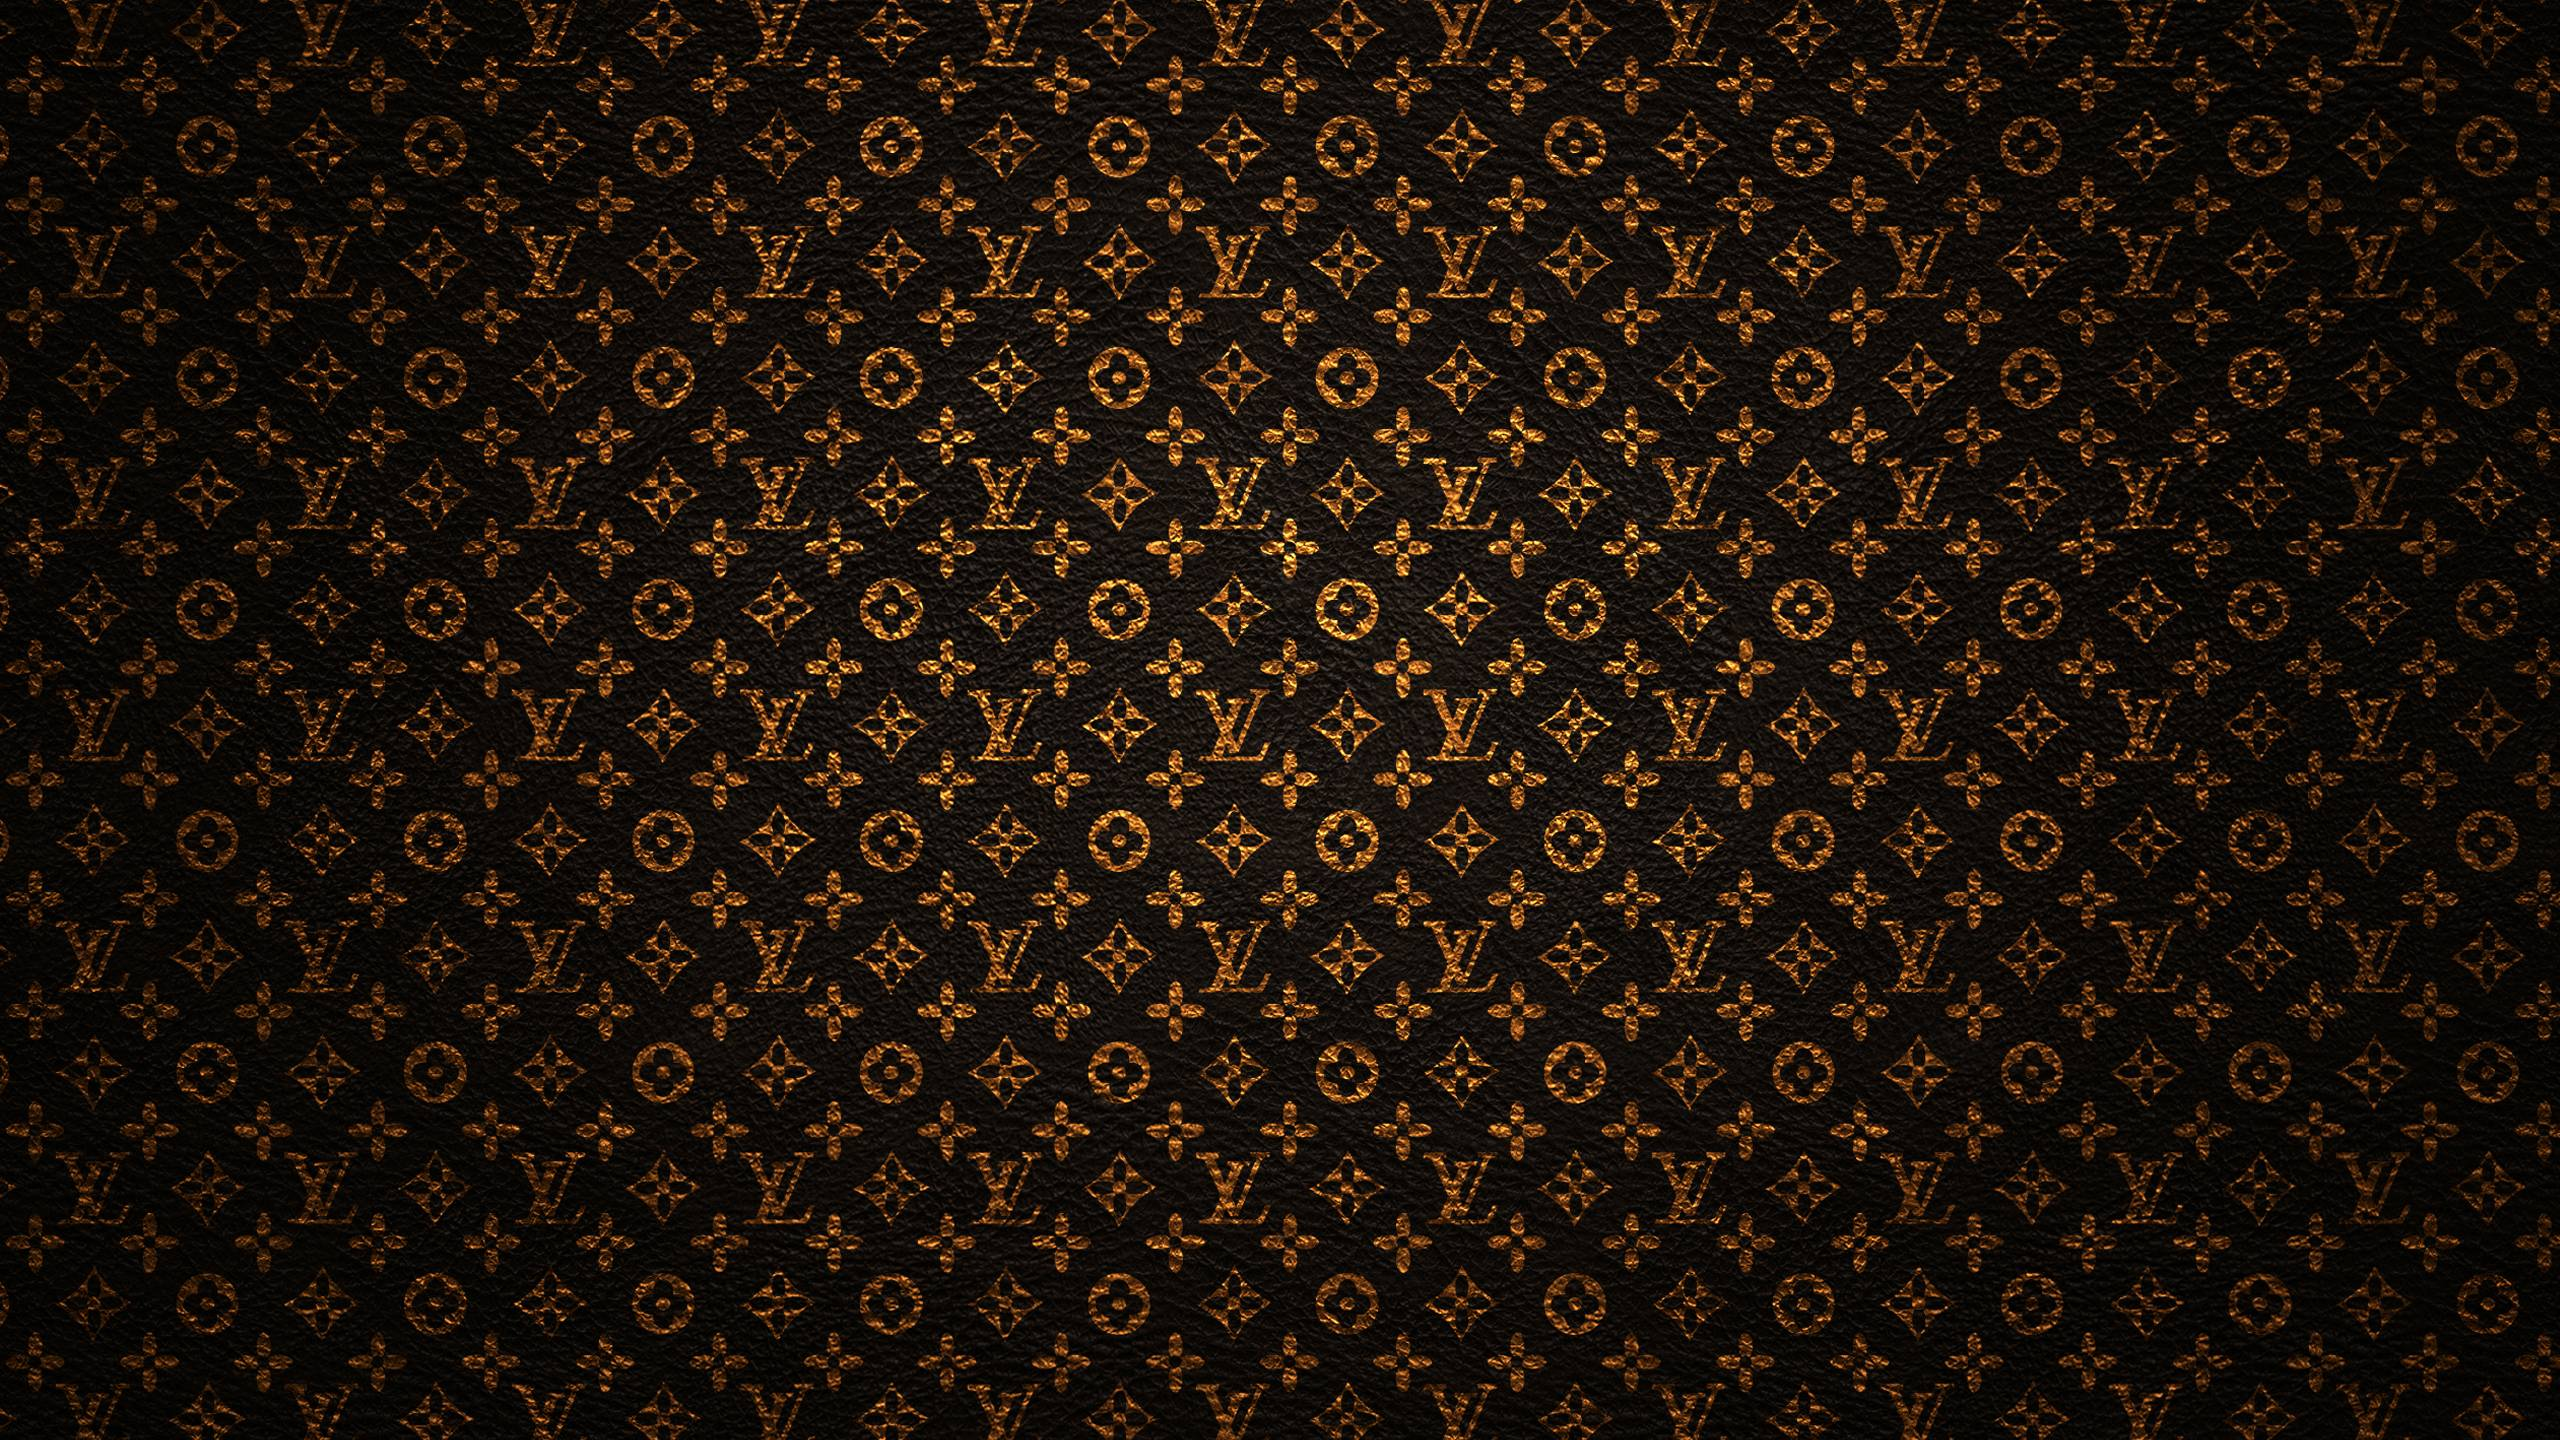 Wallpaper iphone louis vuitton - Gold Radial Gradient Wallpaper For Ipad Jayapura News